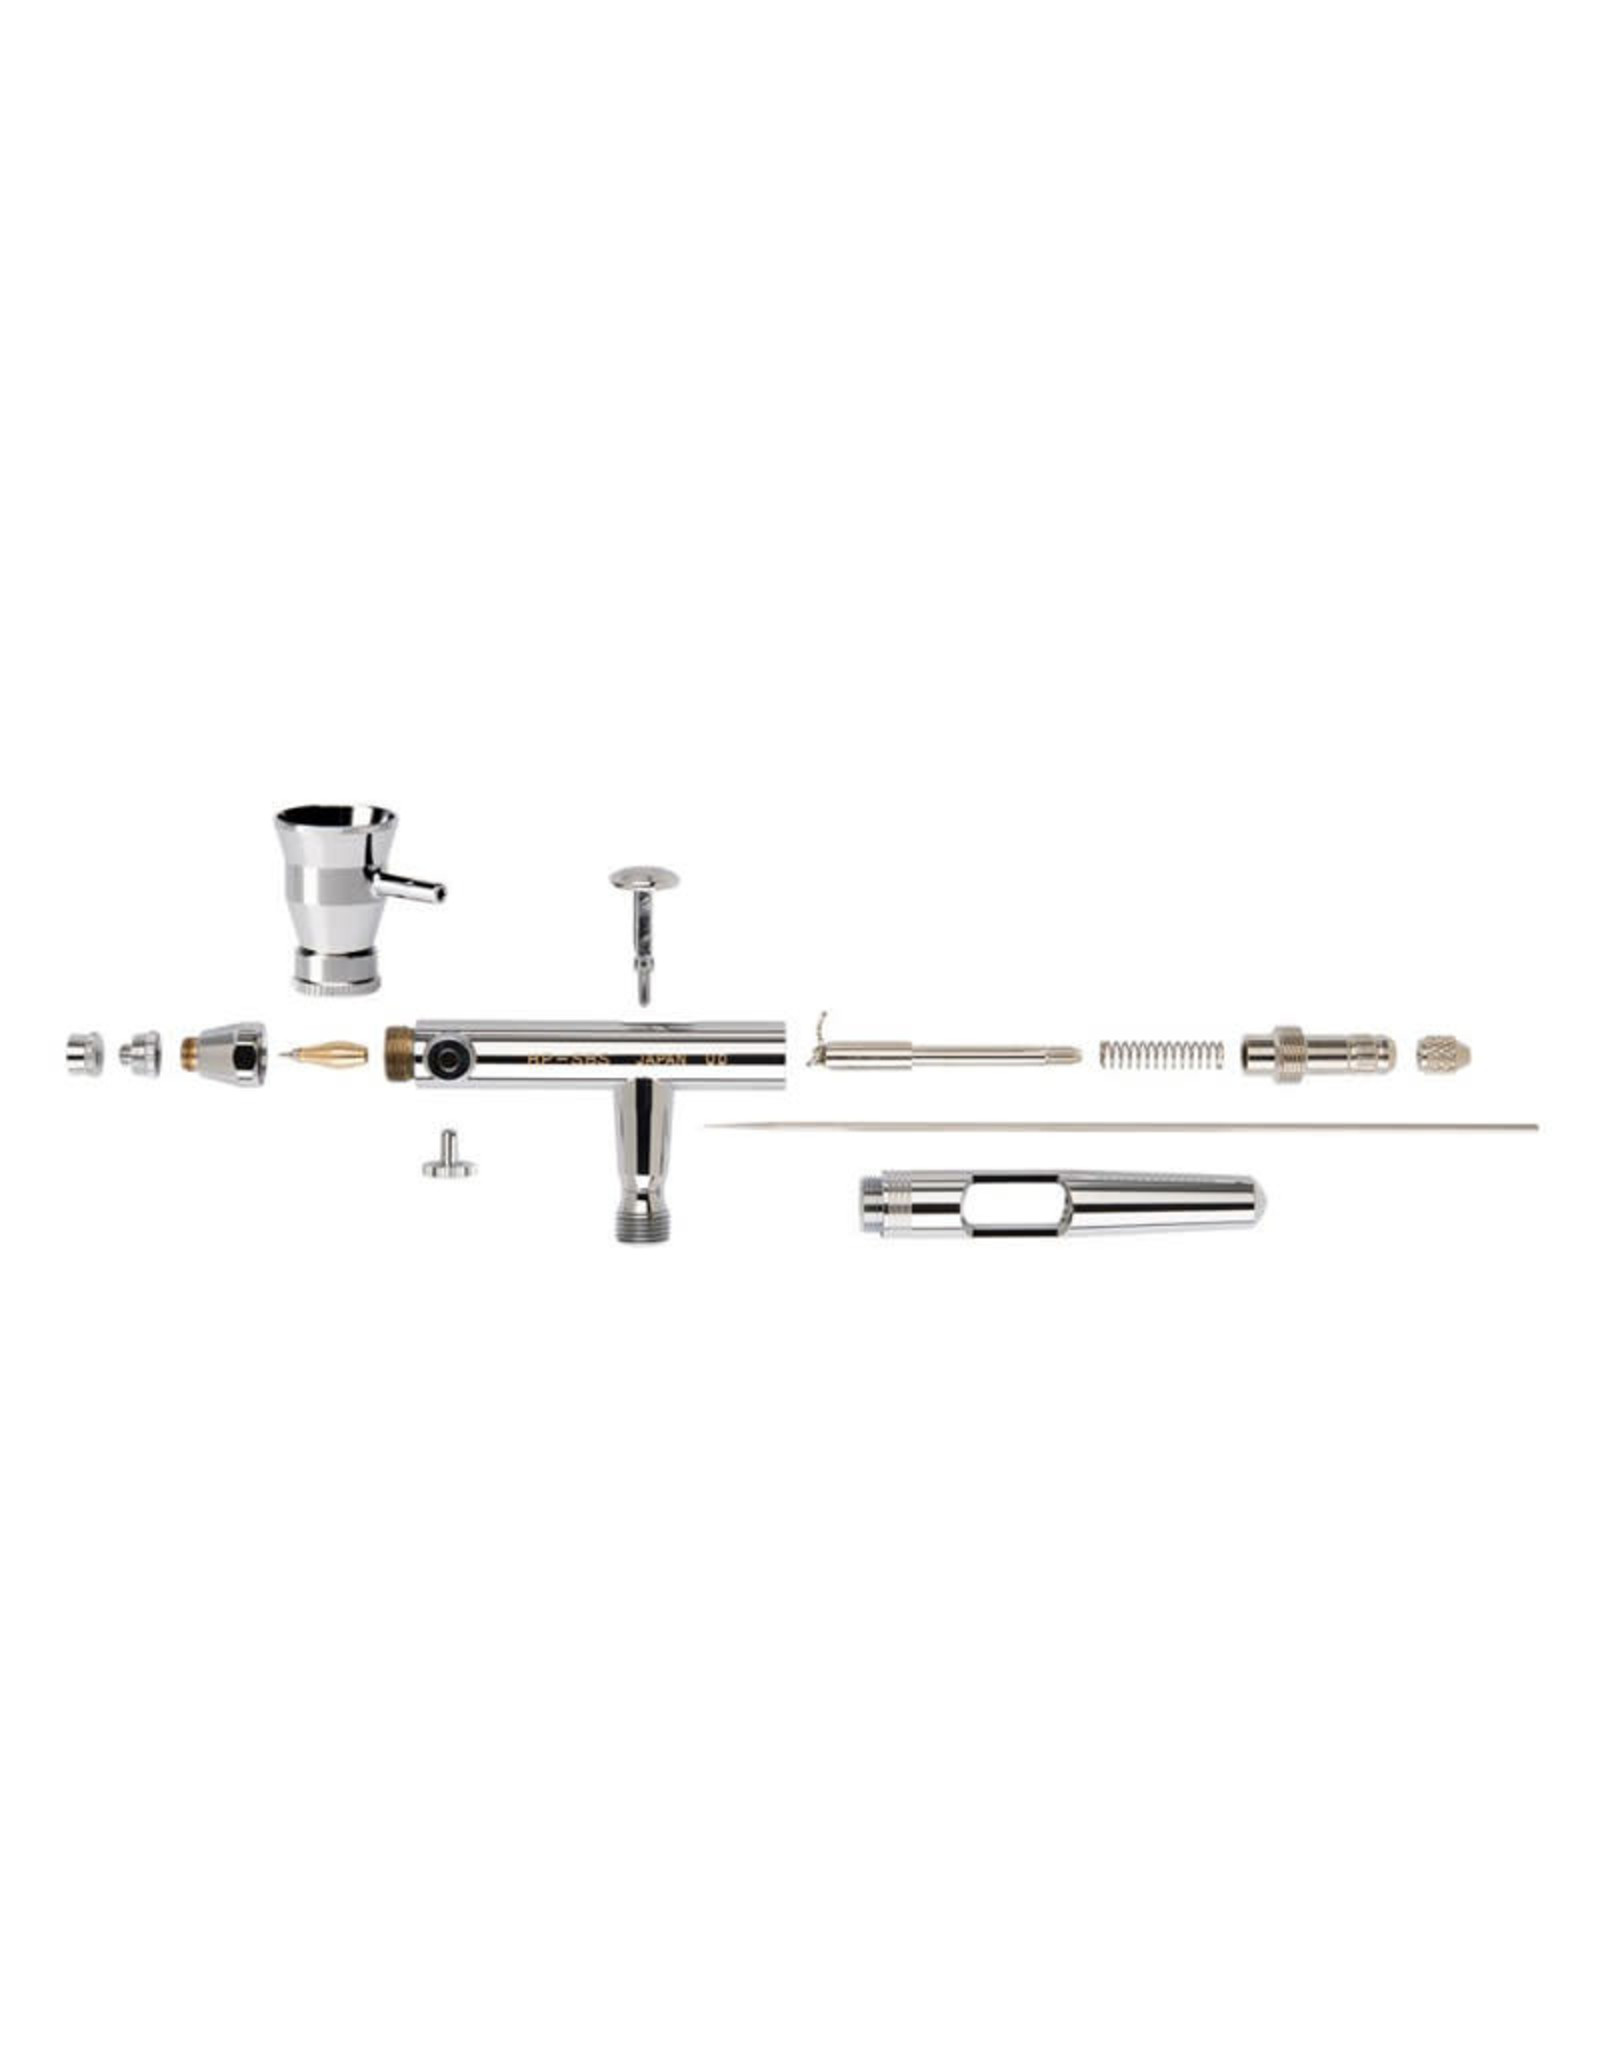 Iwata Iwata Eclipse HP-SBS Side Feed Dual Action Airbrush